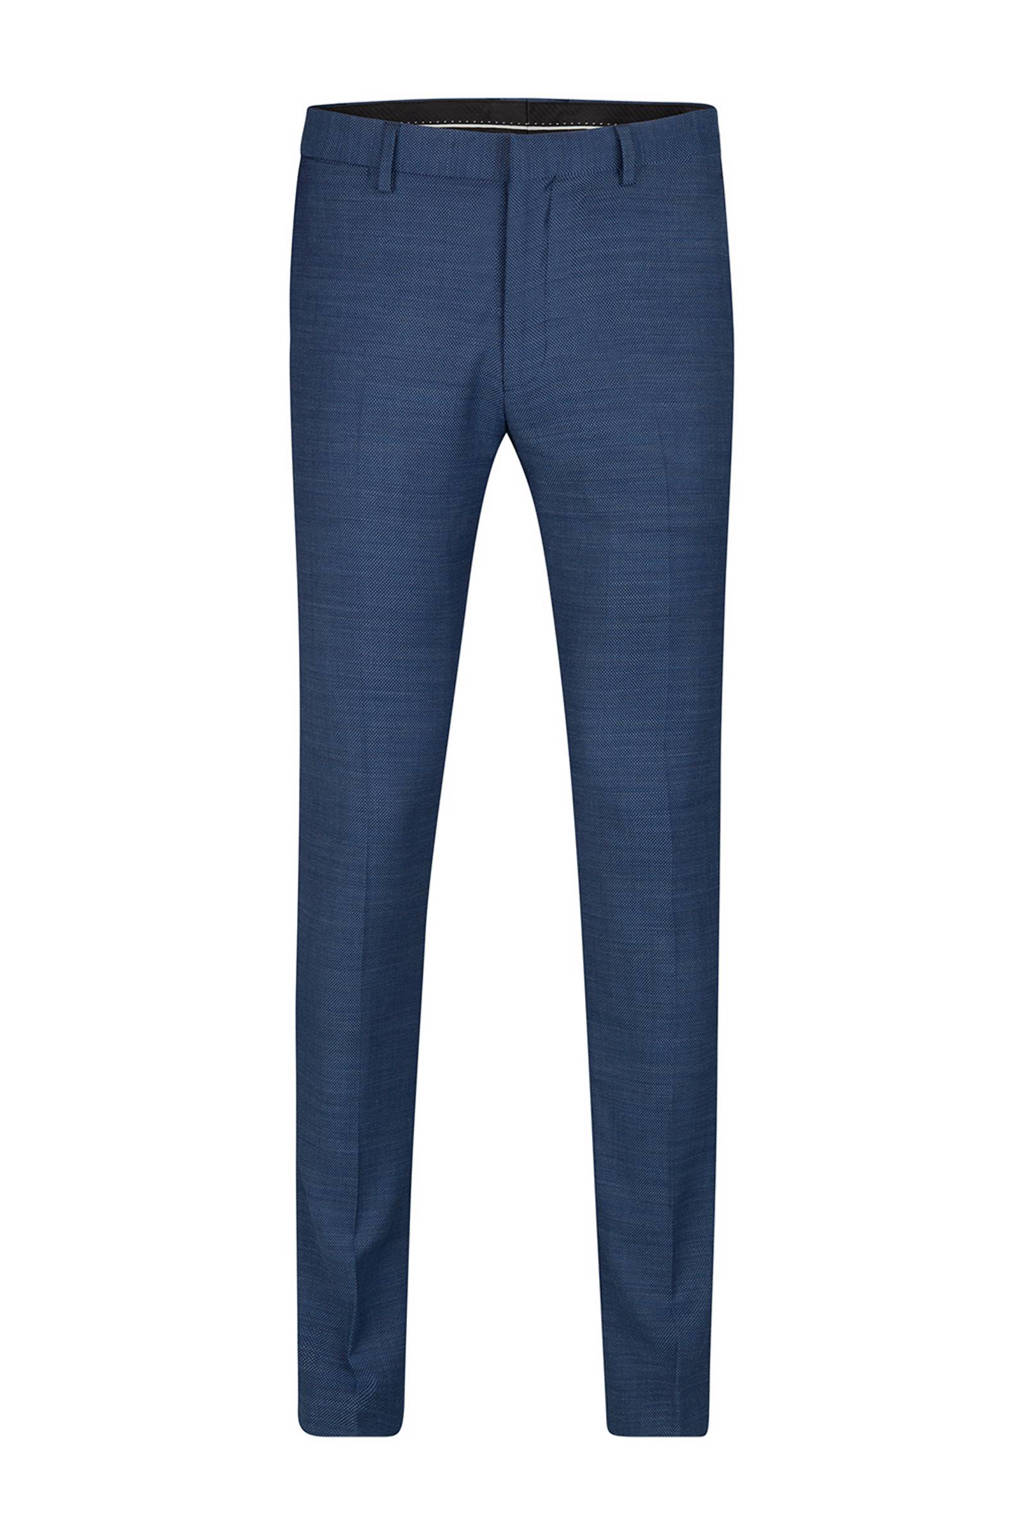 WE Fashion slim fit pantalon met wol, Blauw